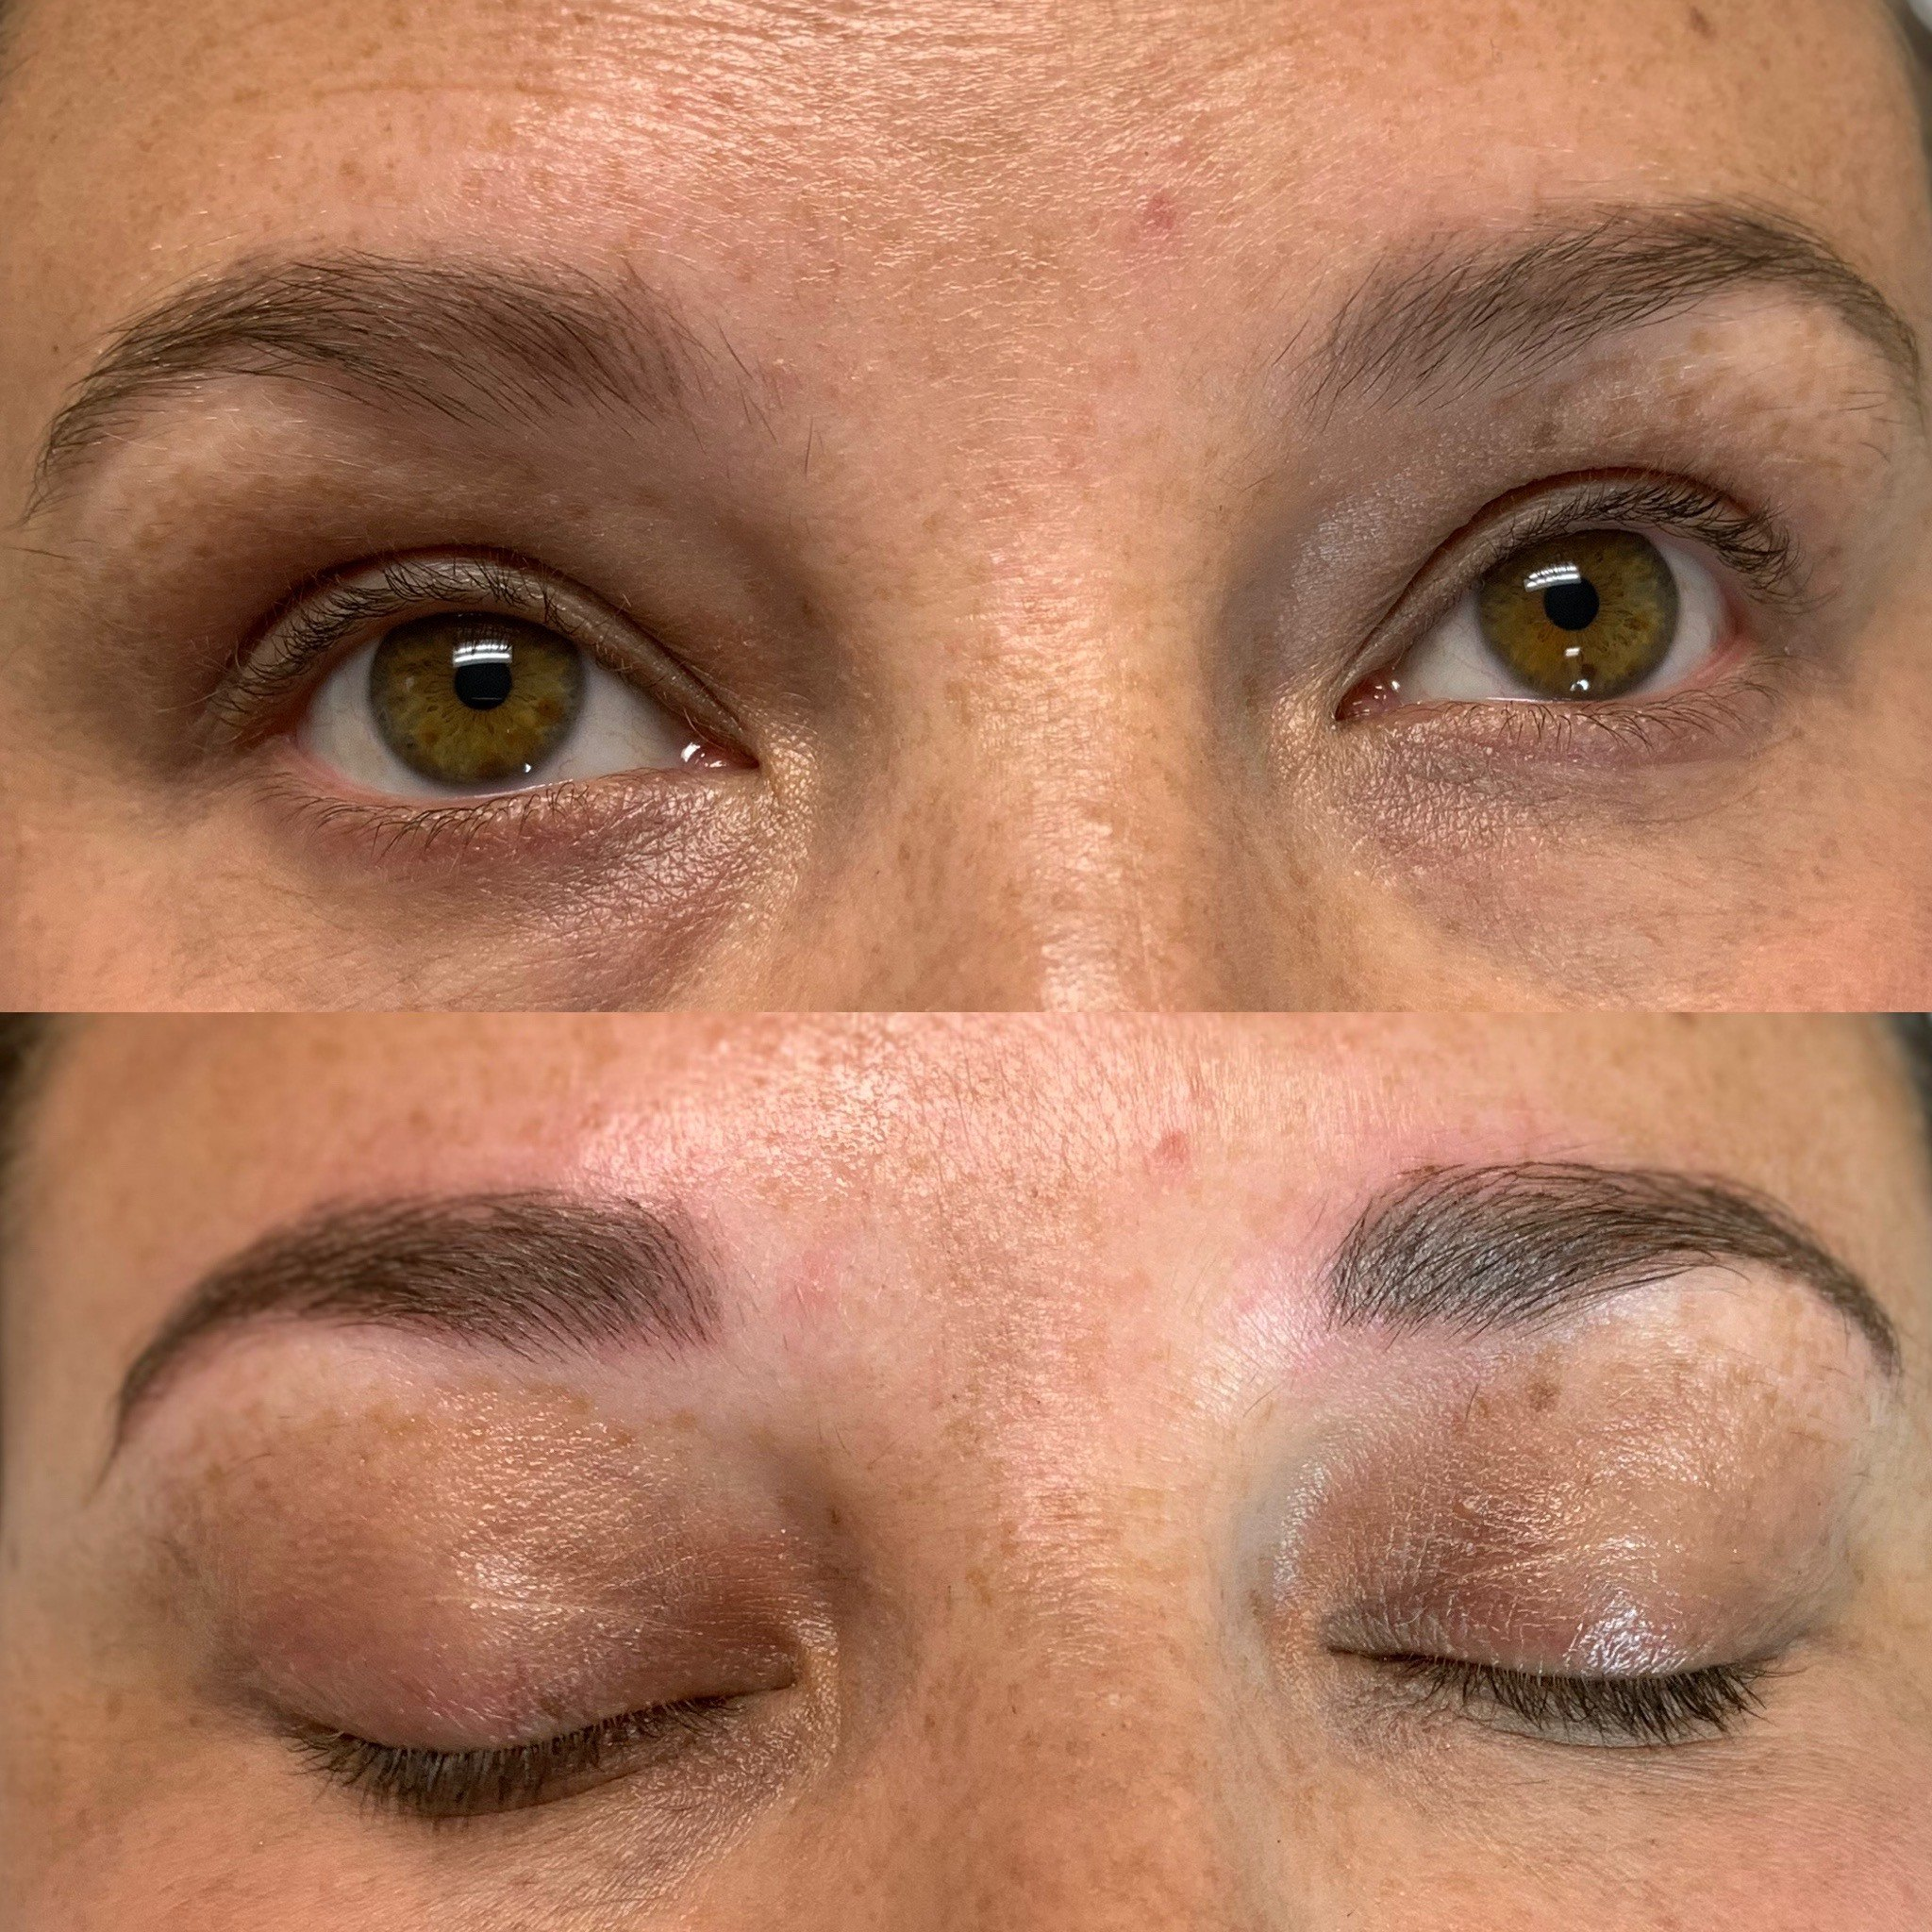 Microblading in Sugar land Texas, Microblading before and after